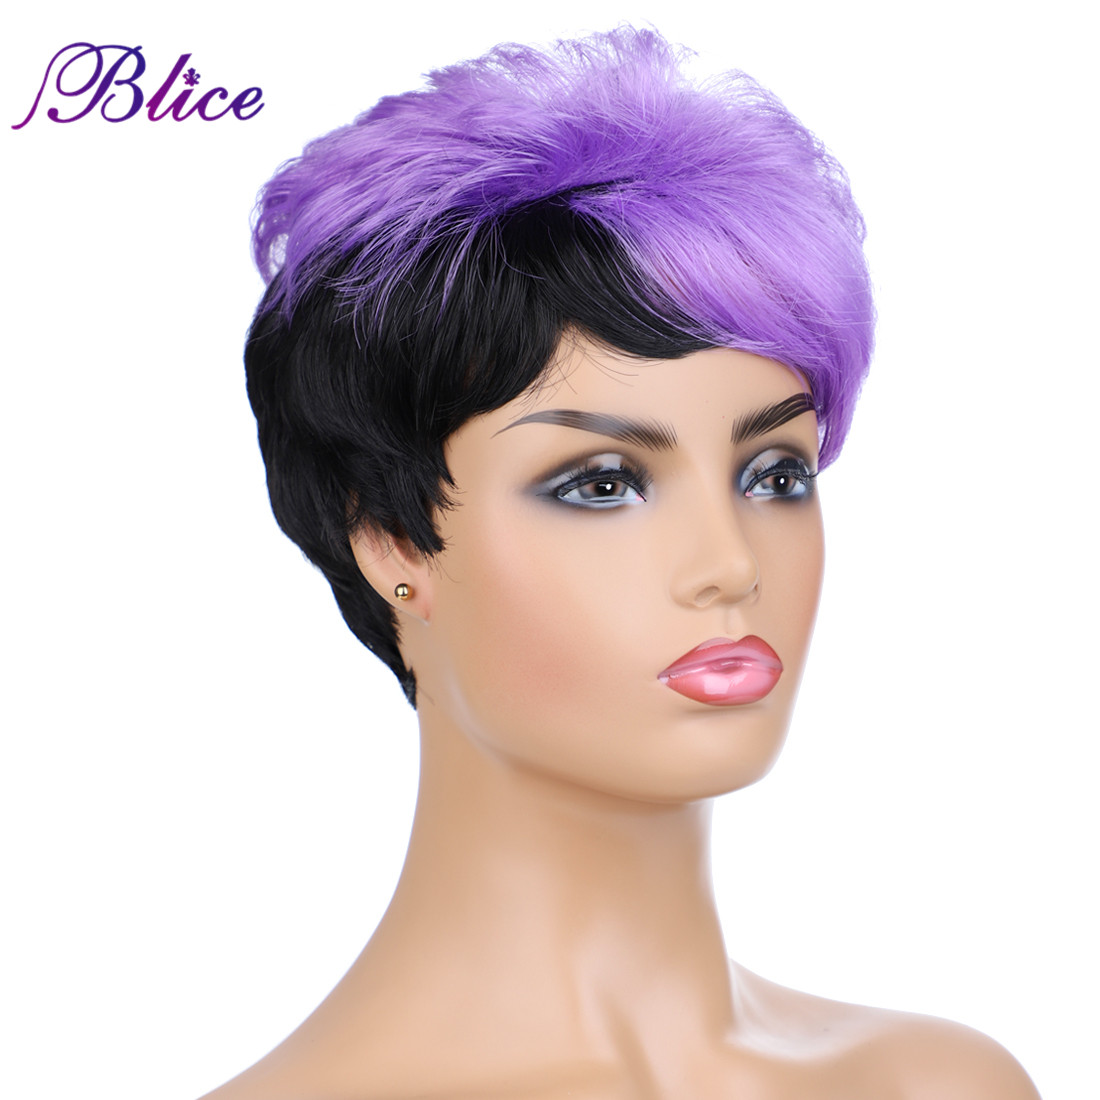 Blice Synthetic Nature Wave Full Machine Made Color Wig FT1B/Purple Kanekalon 6Inch Short Women Wig